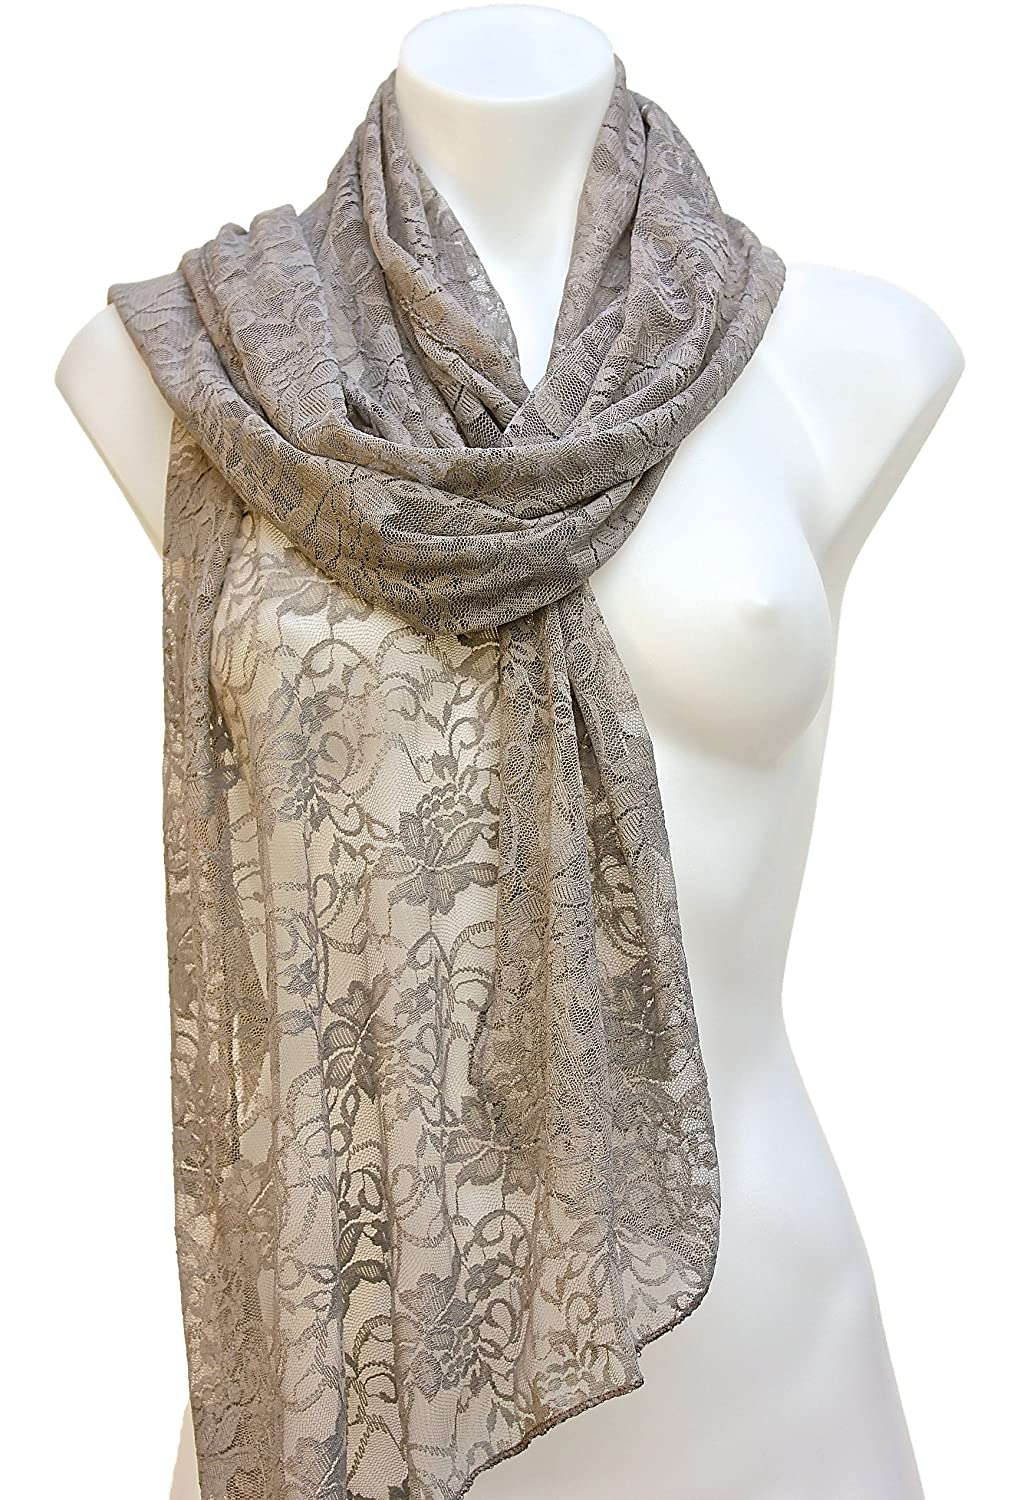 Terra Nomad Women's/Girls Long Sheer Lace Scarf - Sand